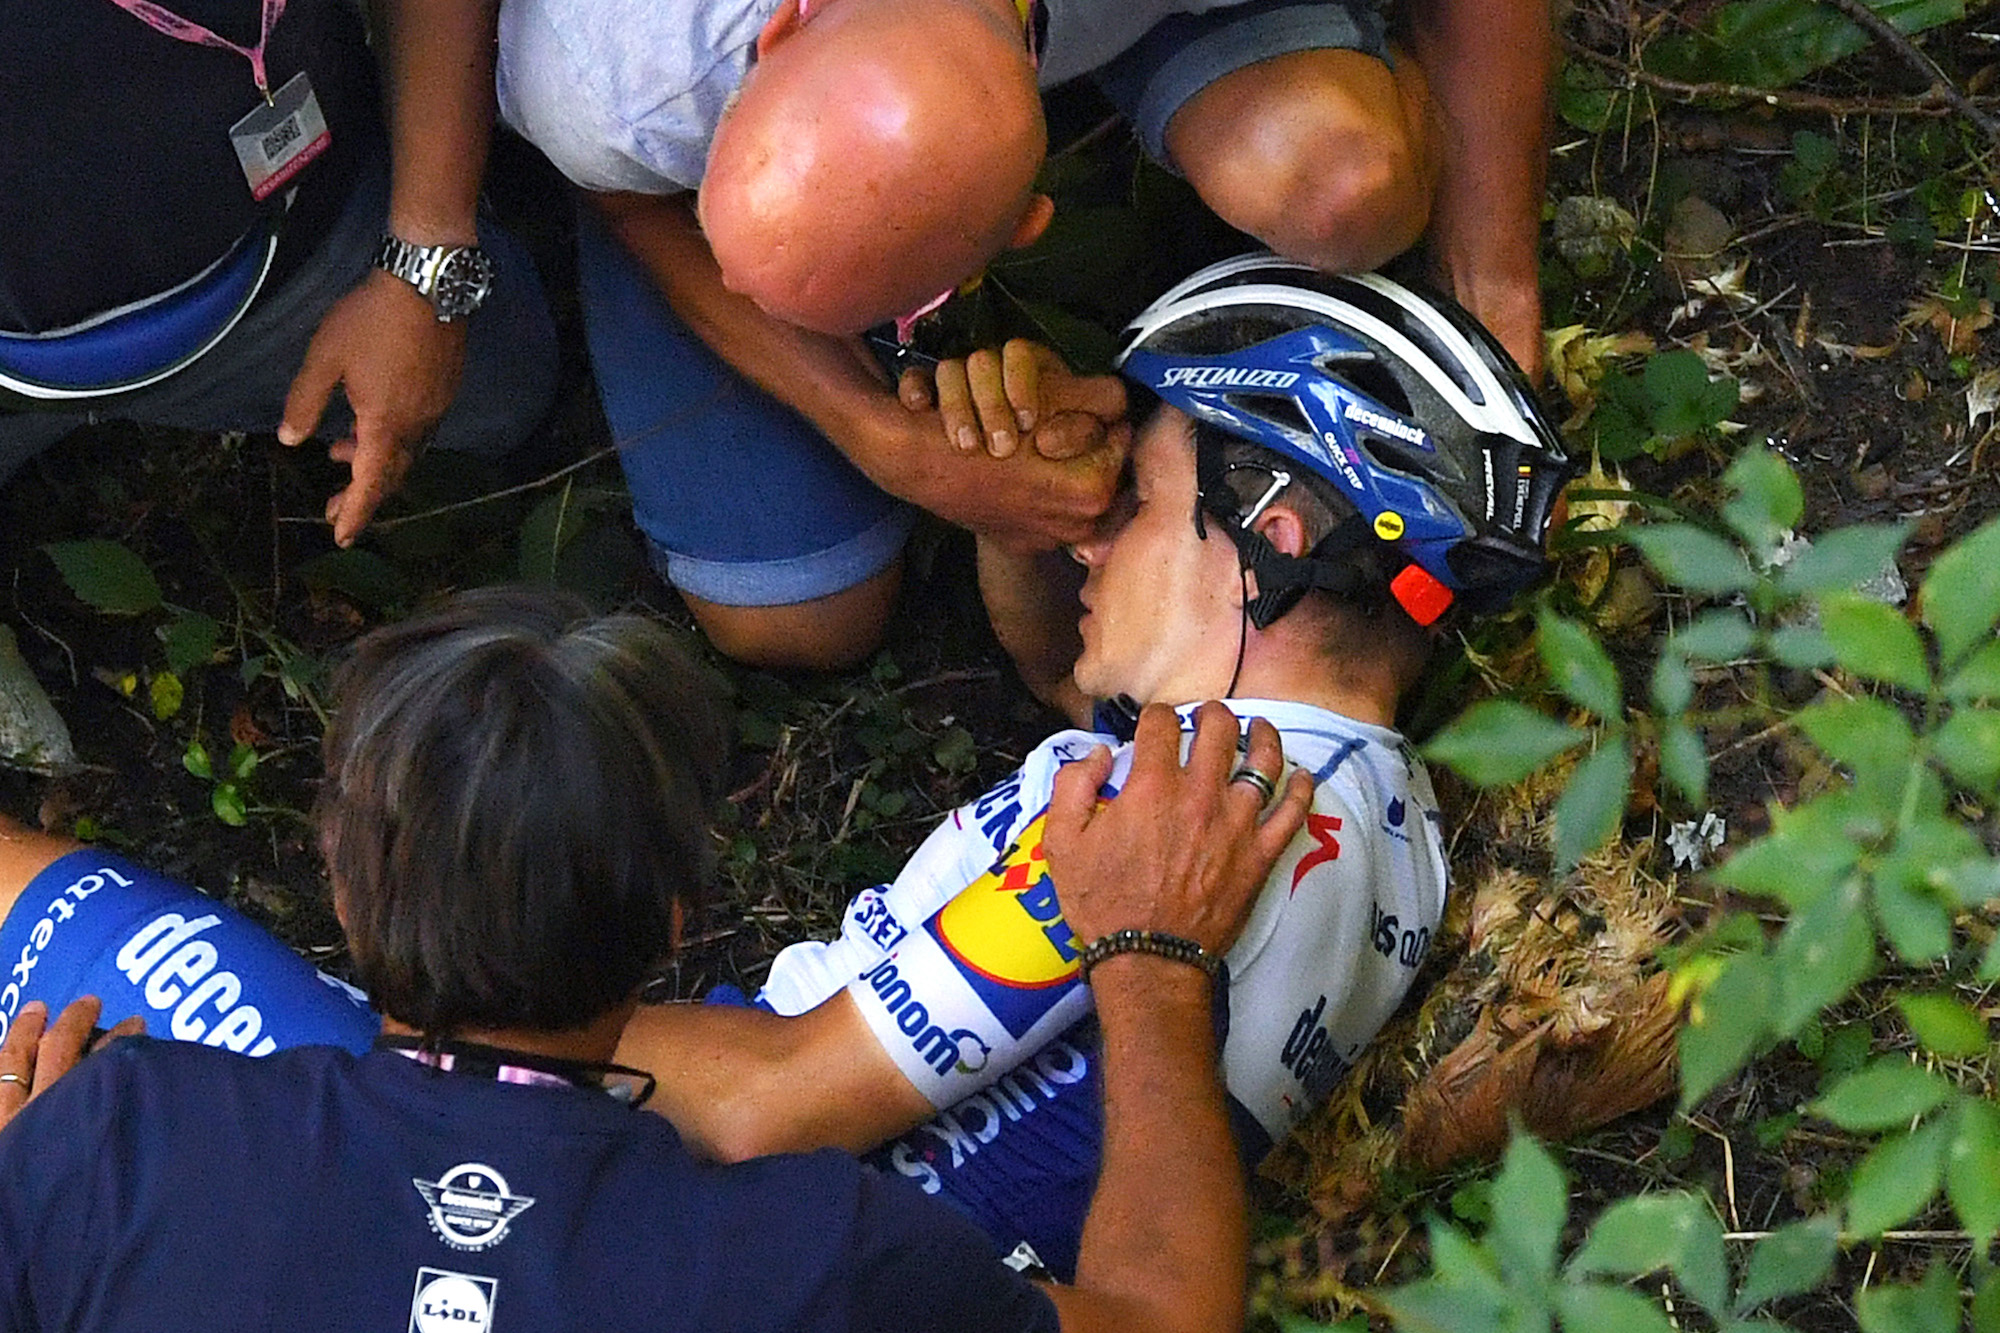 Update on Remco Evenepoel's recovery as racing return delayed by injury - Cycling Weekly